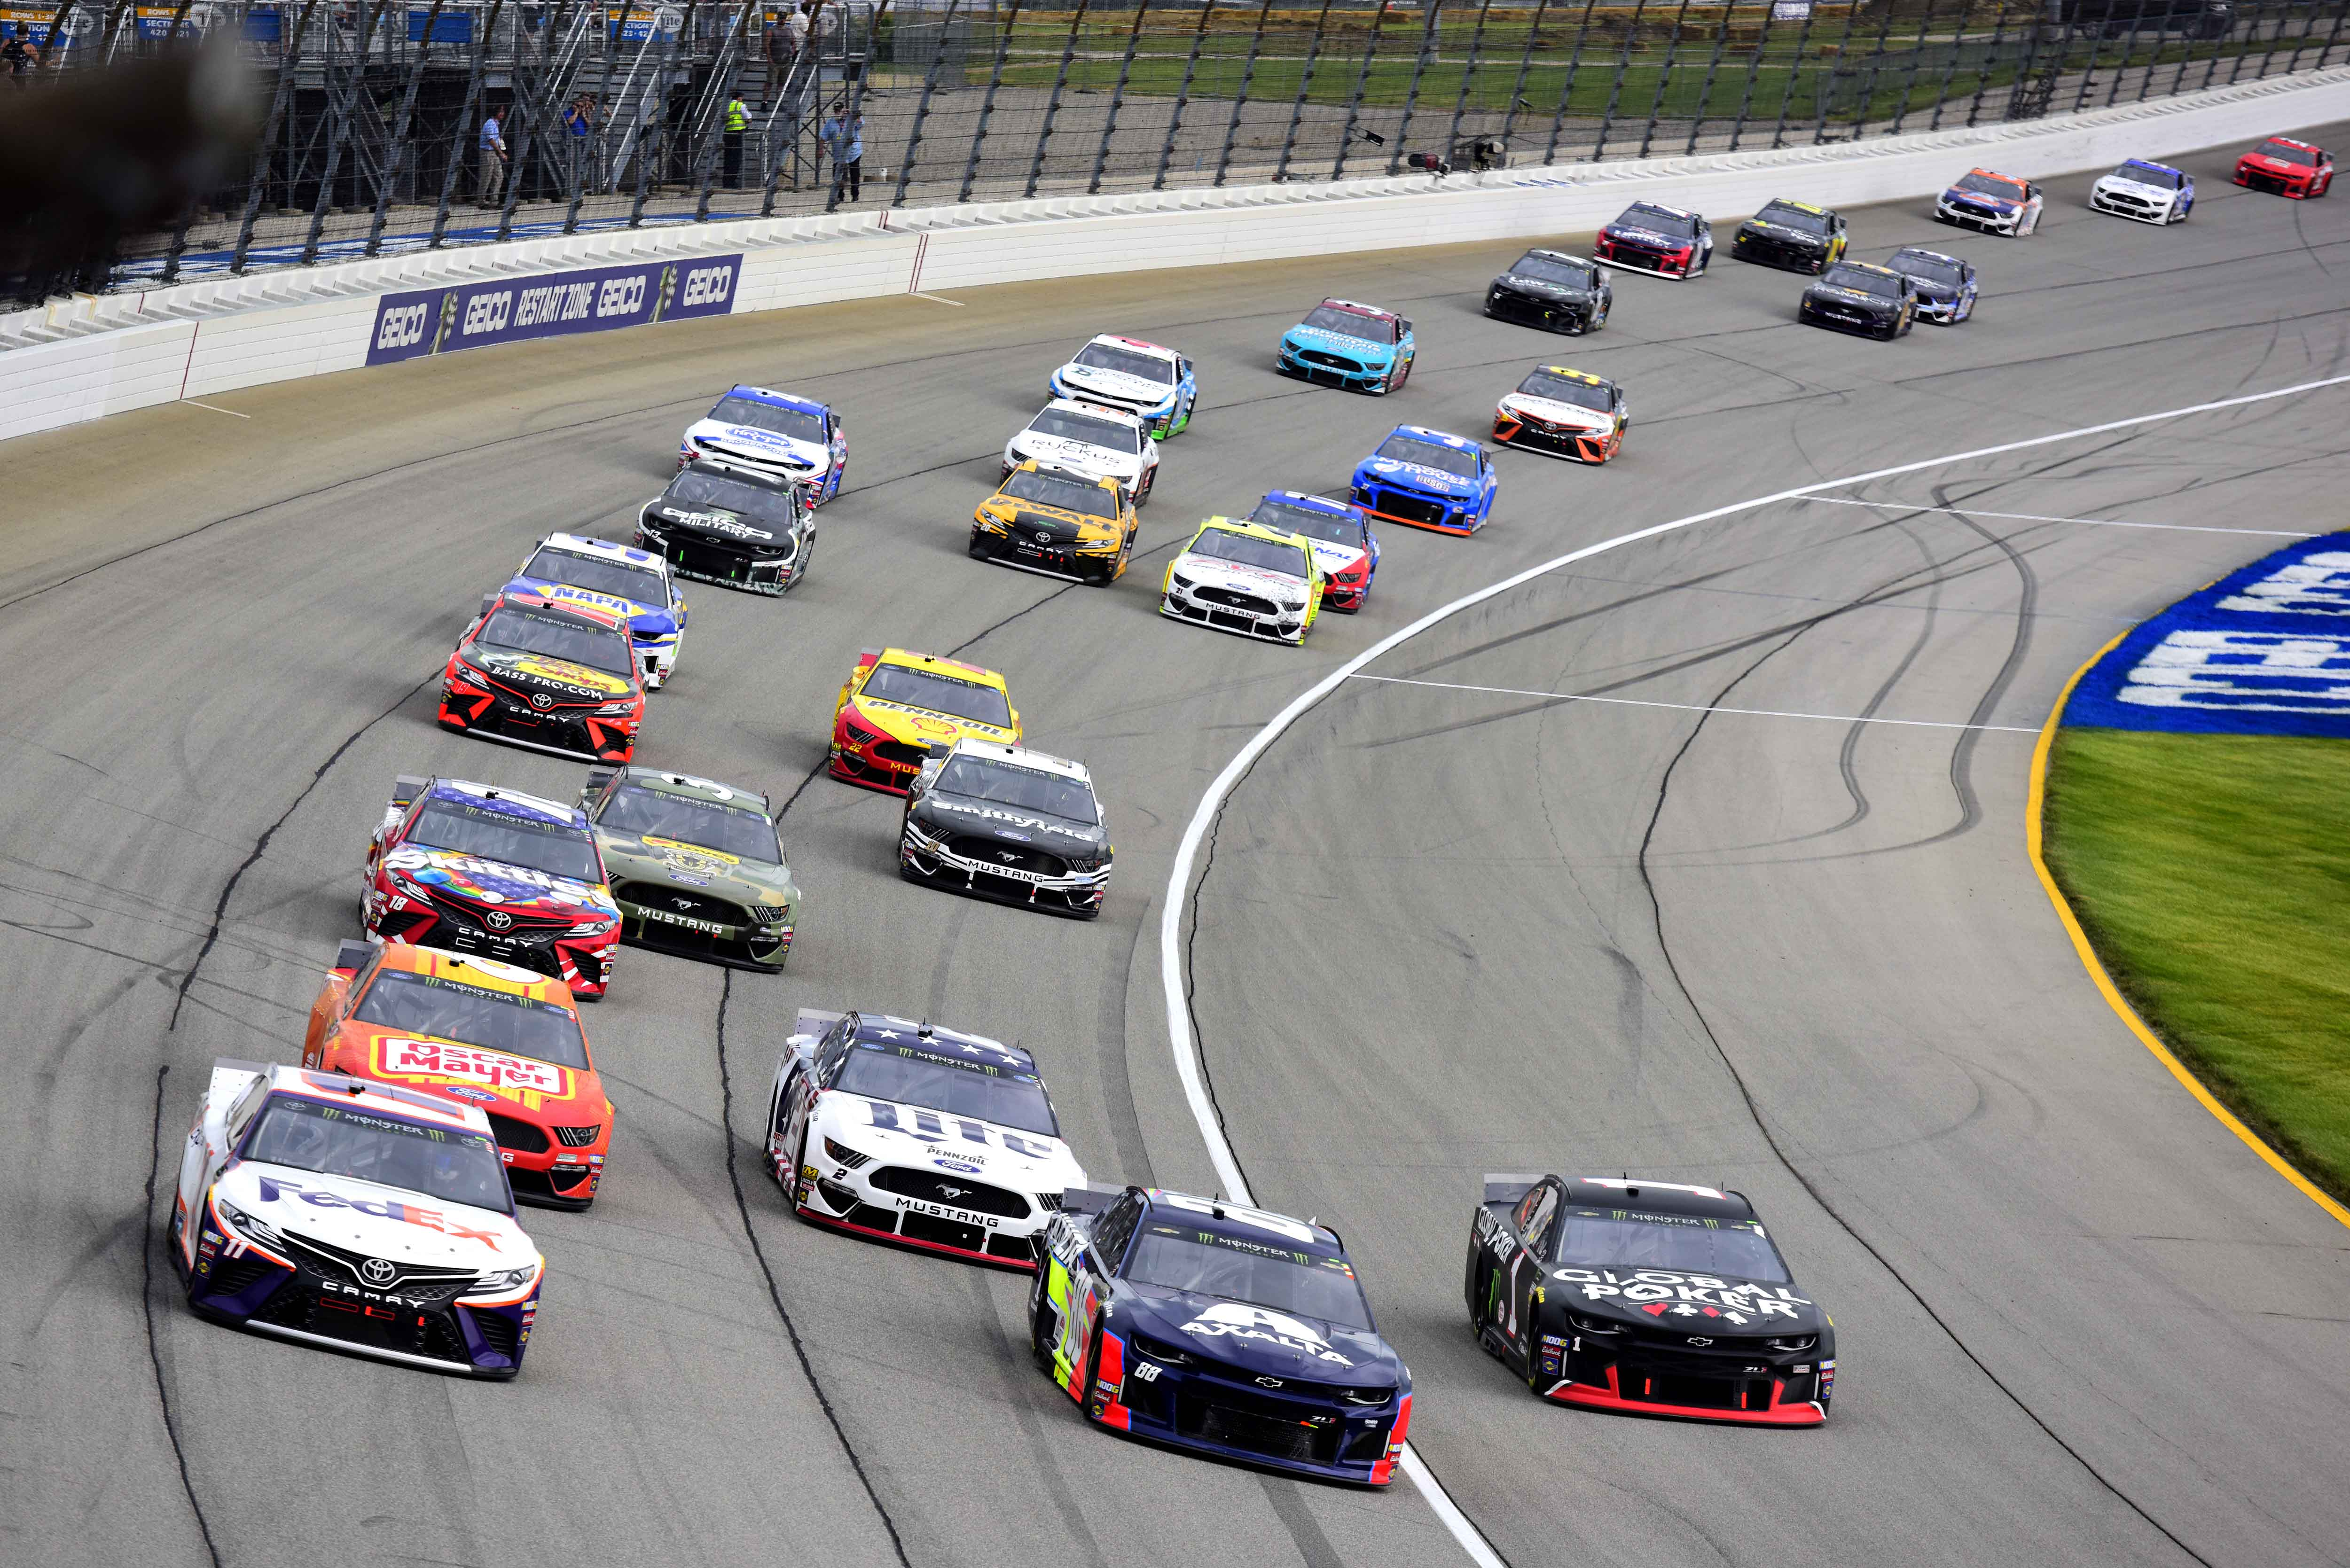 2019 NASCAR Penalties: Ranking the most frequent violators